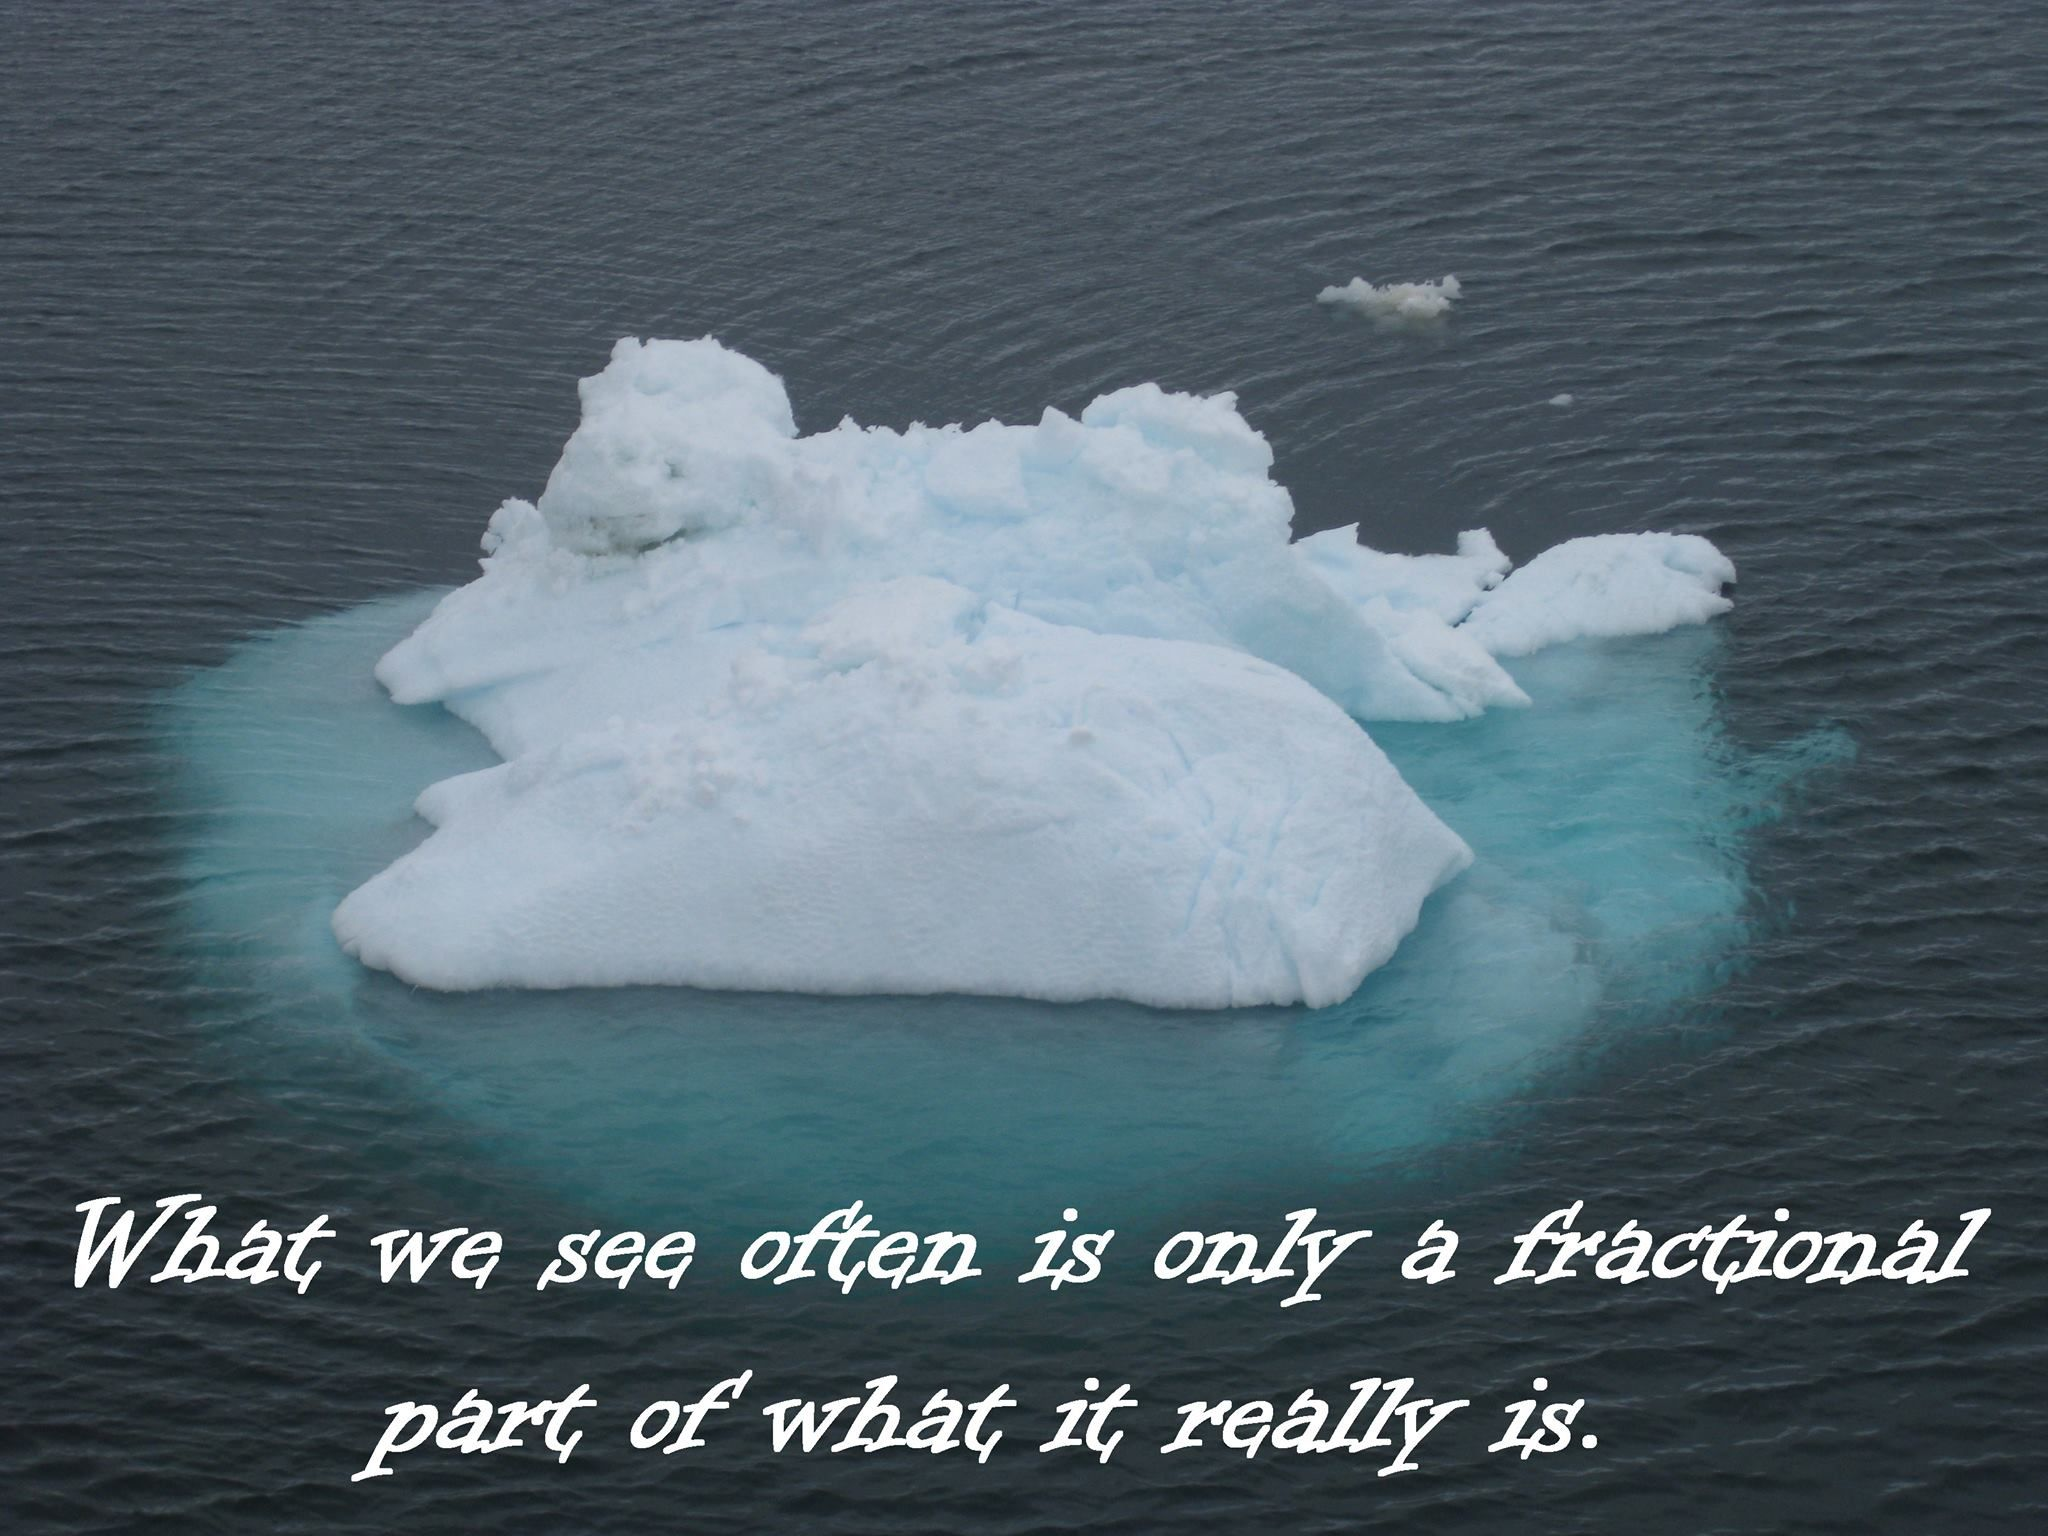 What we see often is only a fractional part of what it really is.